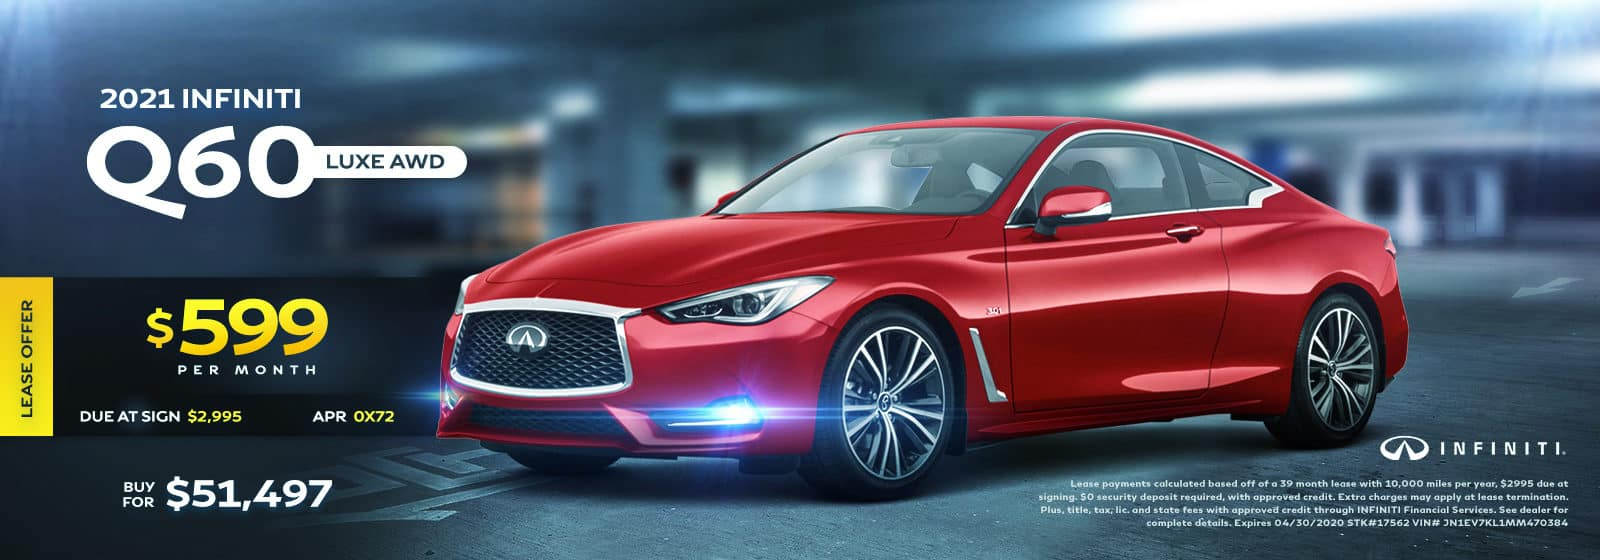 2021 Q60 Luxe AWD April 2021 Offers